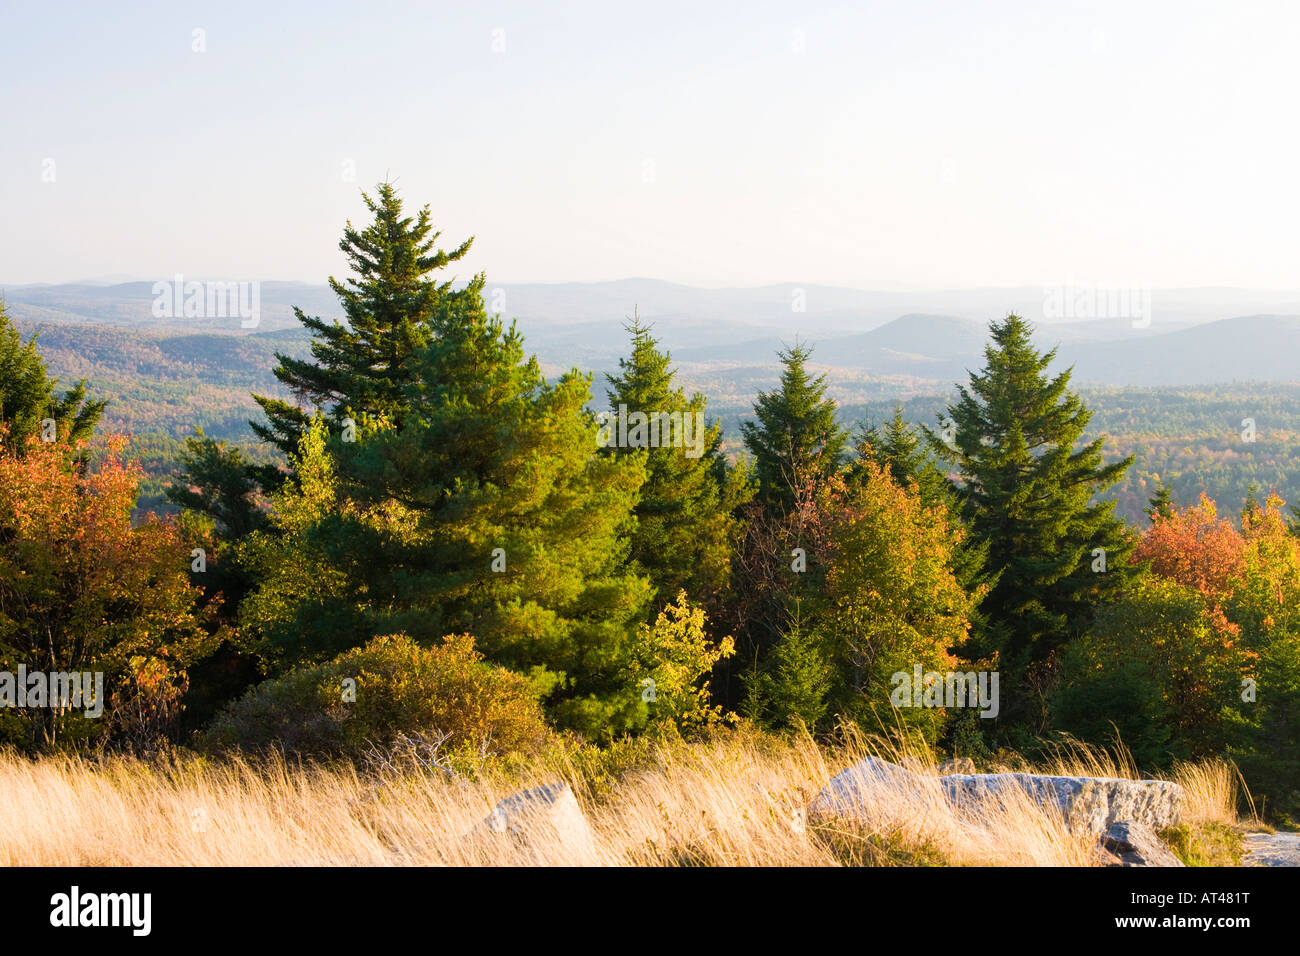 The view south from the summit of Silver Mountain in Lempster, New Hampshire. Stock Photo